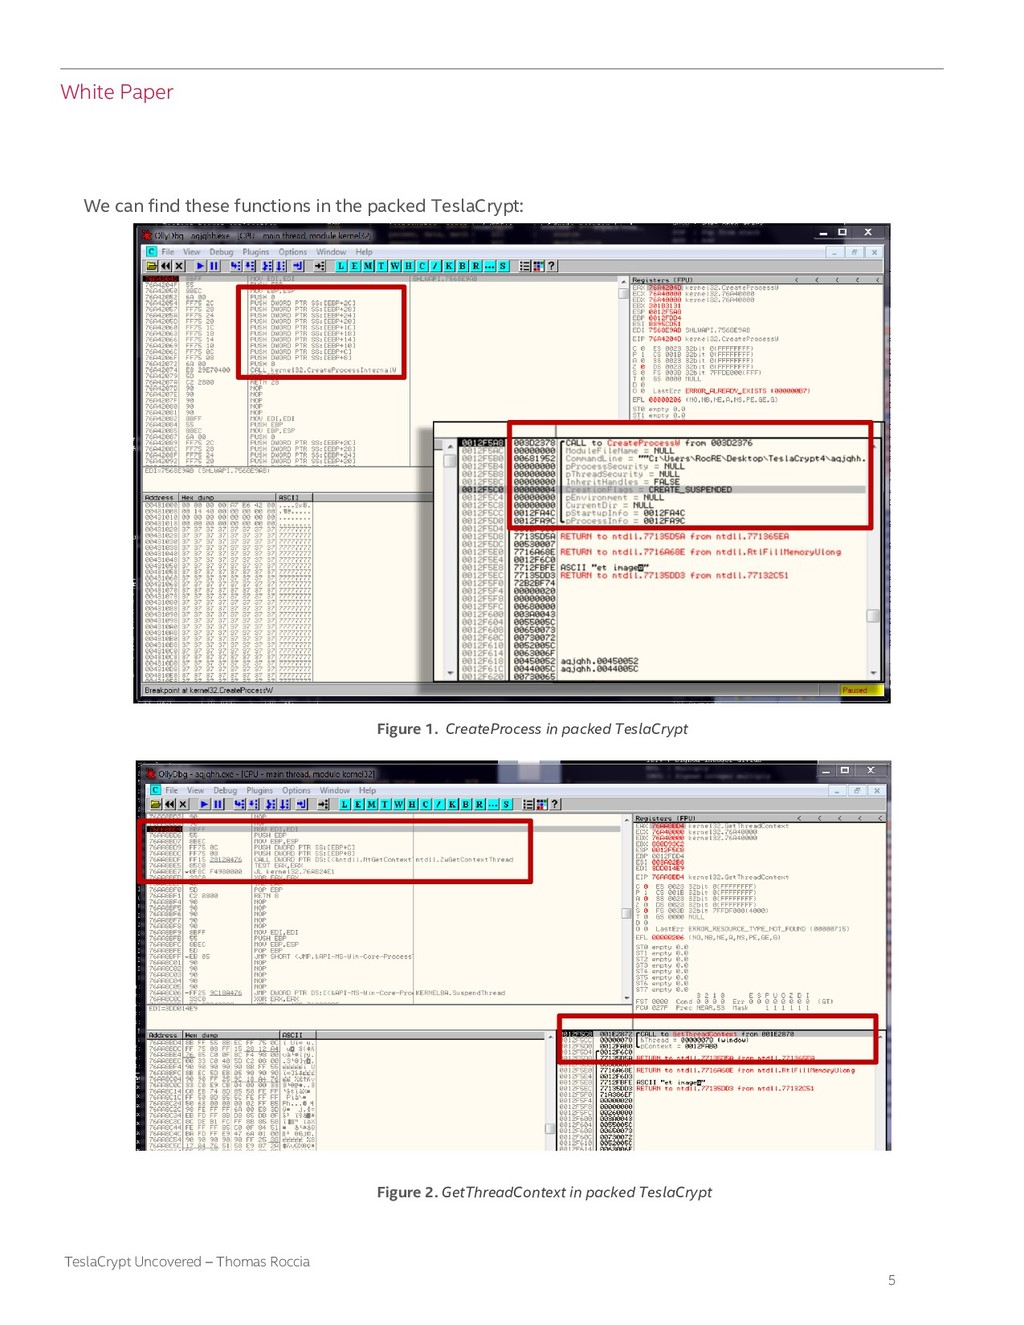 White Paper 5 TeslaCrypt Uncovered – Thomas Roc...